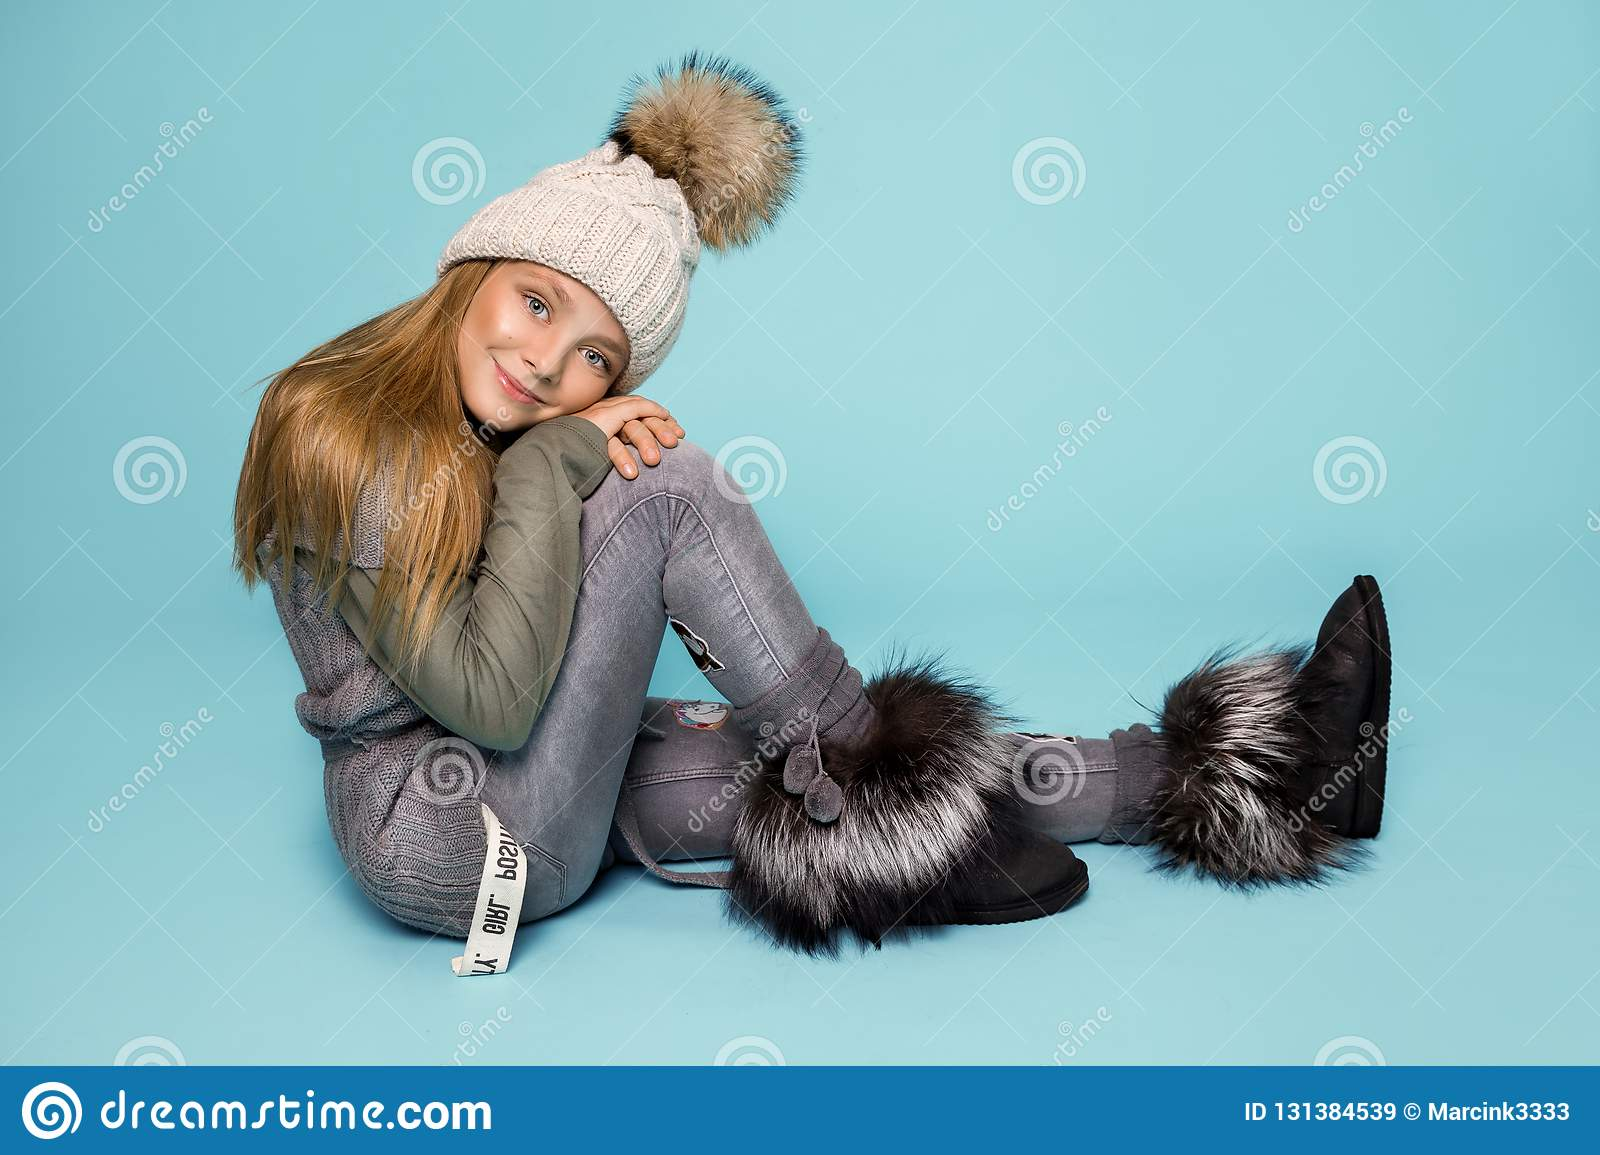 ca20ef1f91de Cute Little Girl Dressed In Winter Clothes